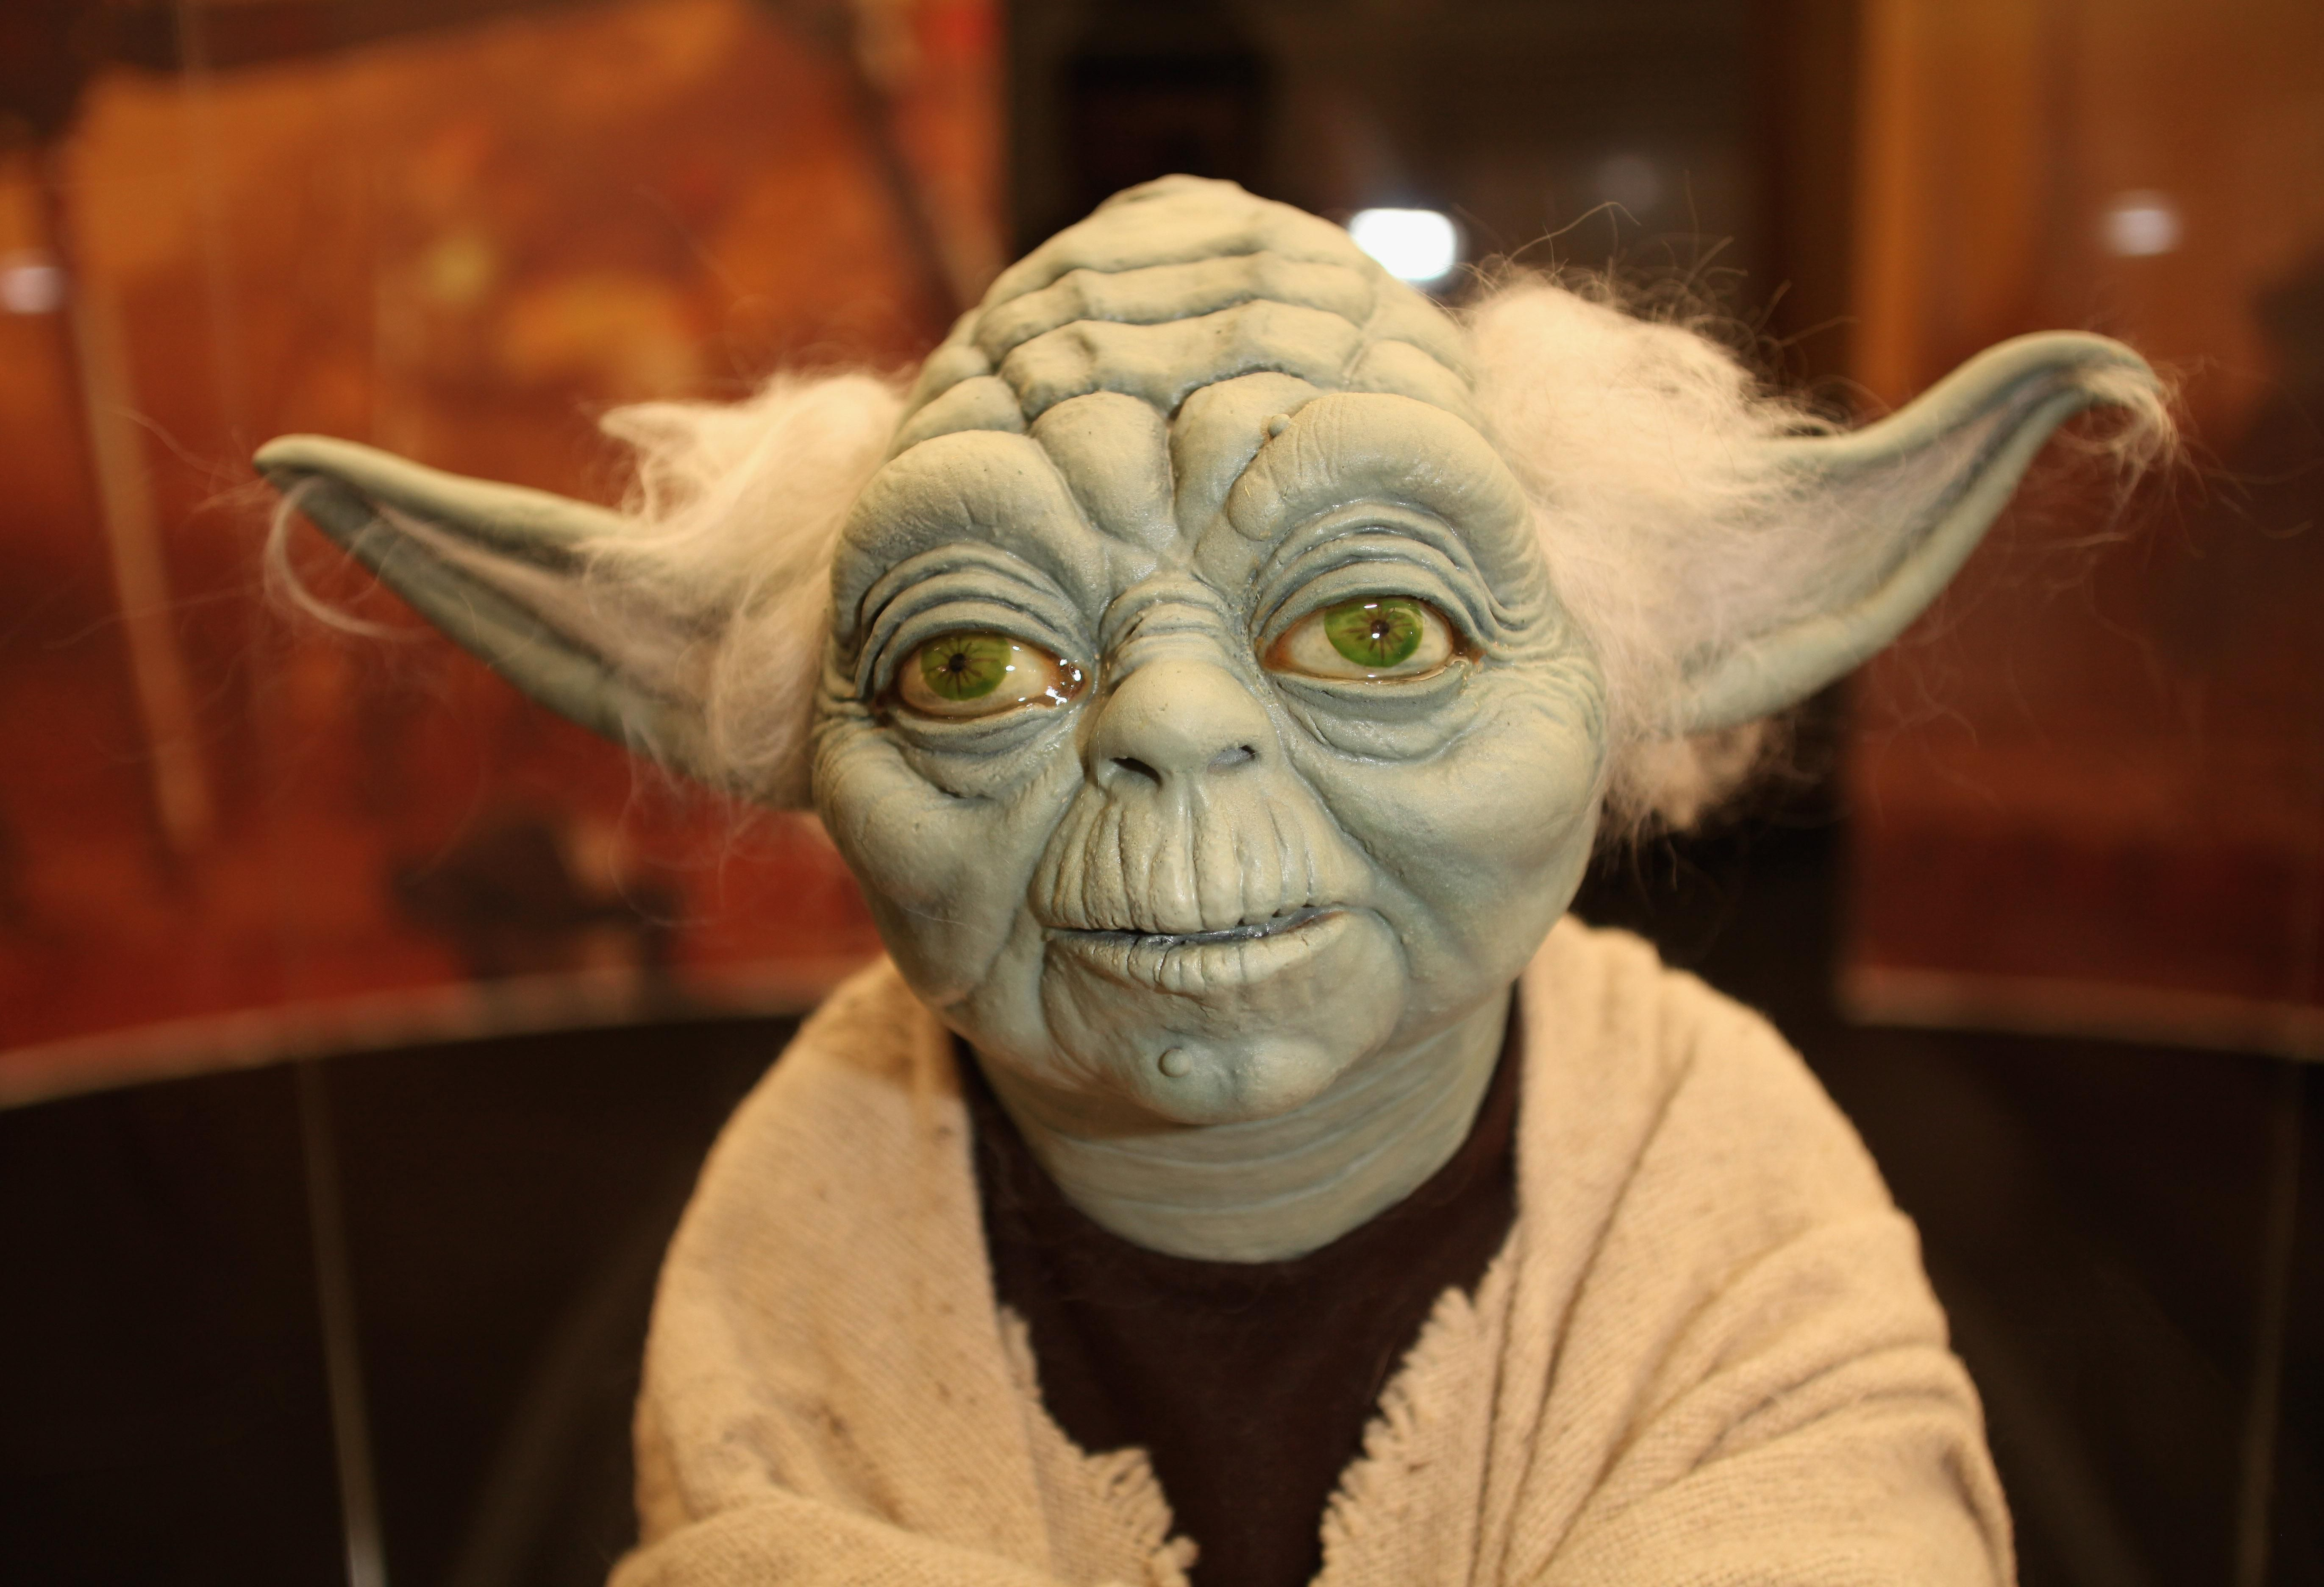 15 Star Wars Yoda Quotes Give You A Glimpse Of Jedi Way Of Life